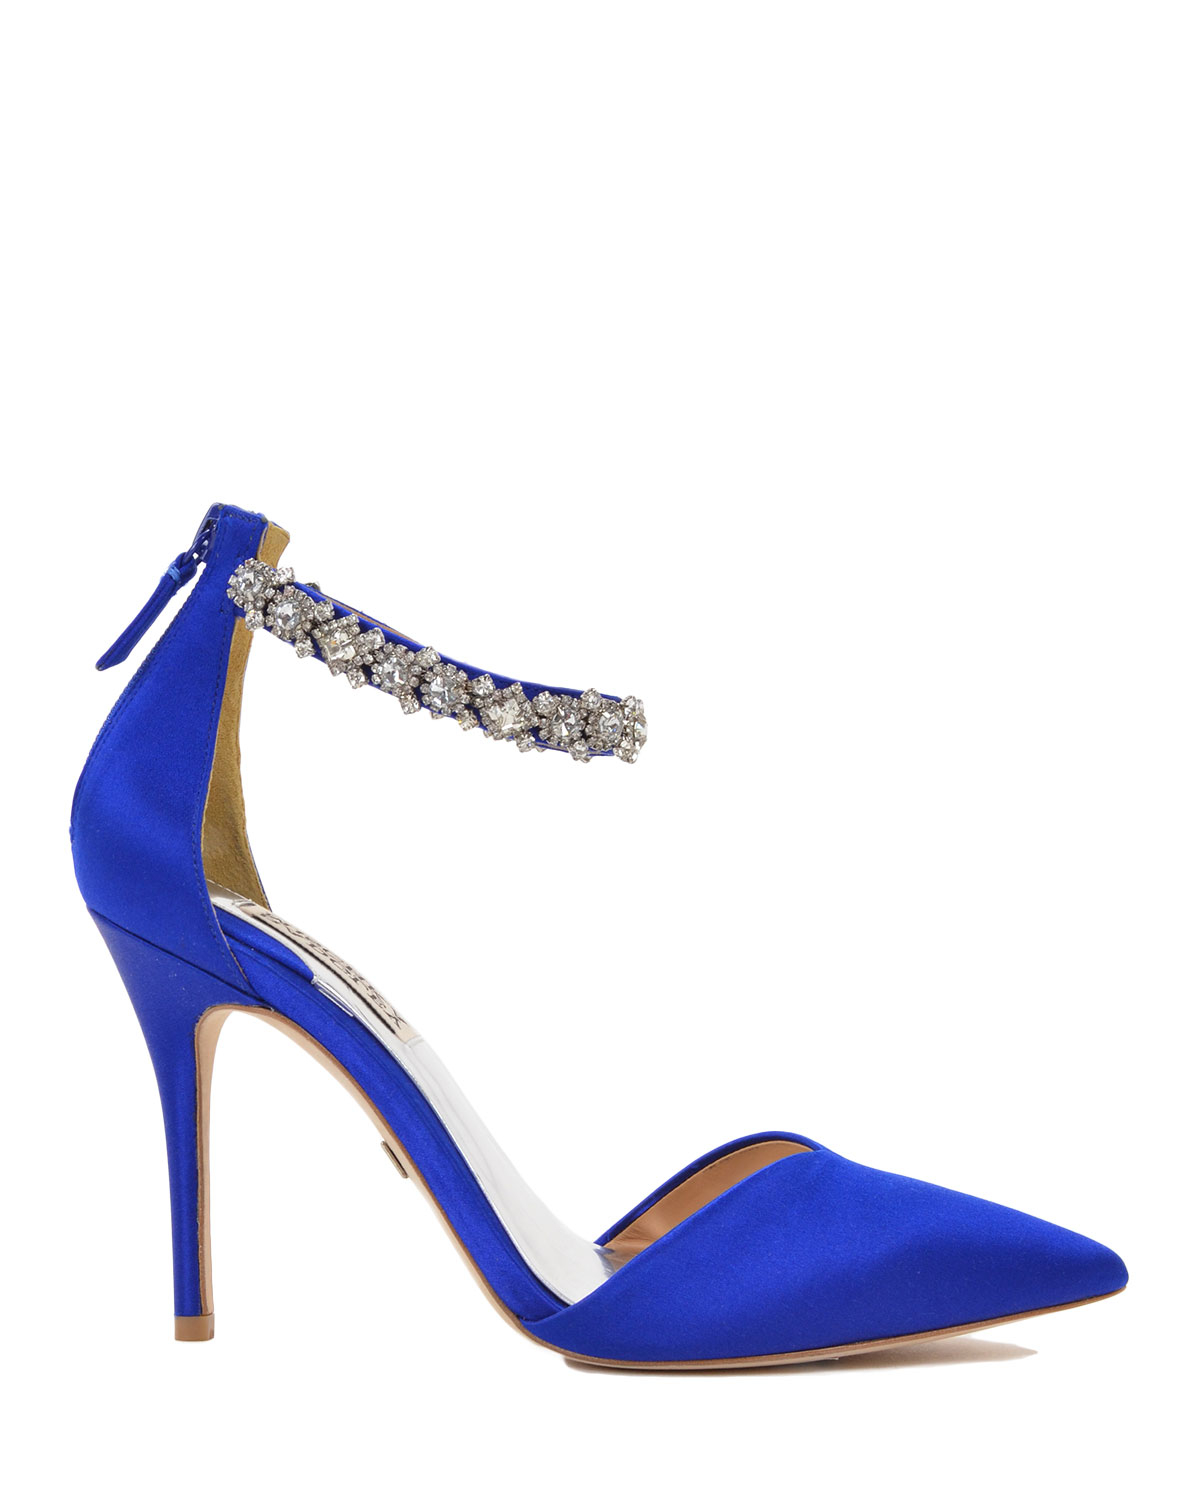 Blue High Heels With Ankle Strap